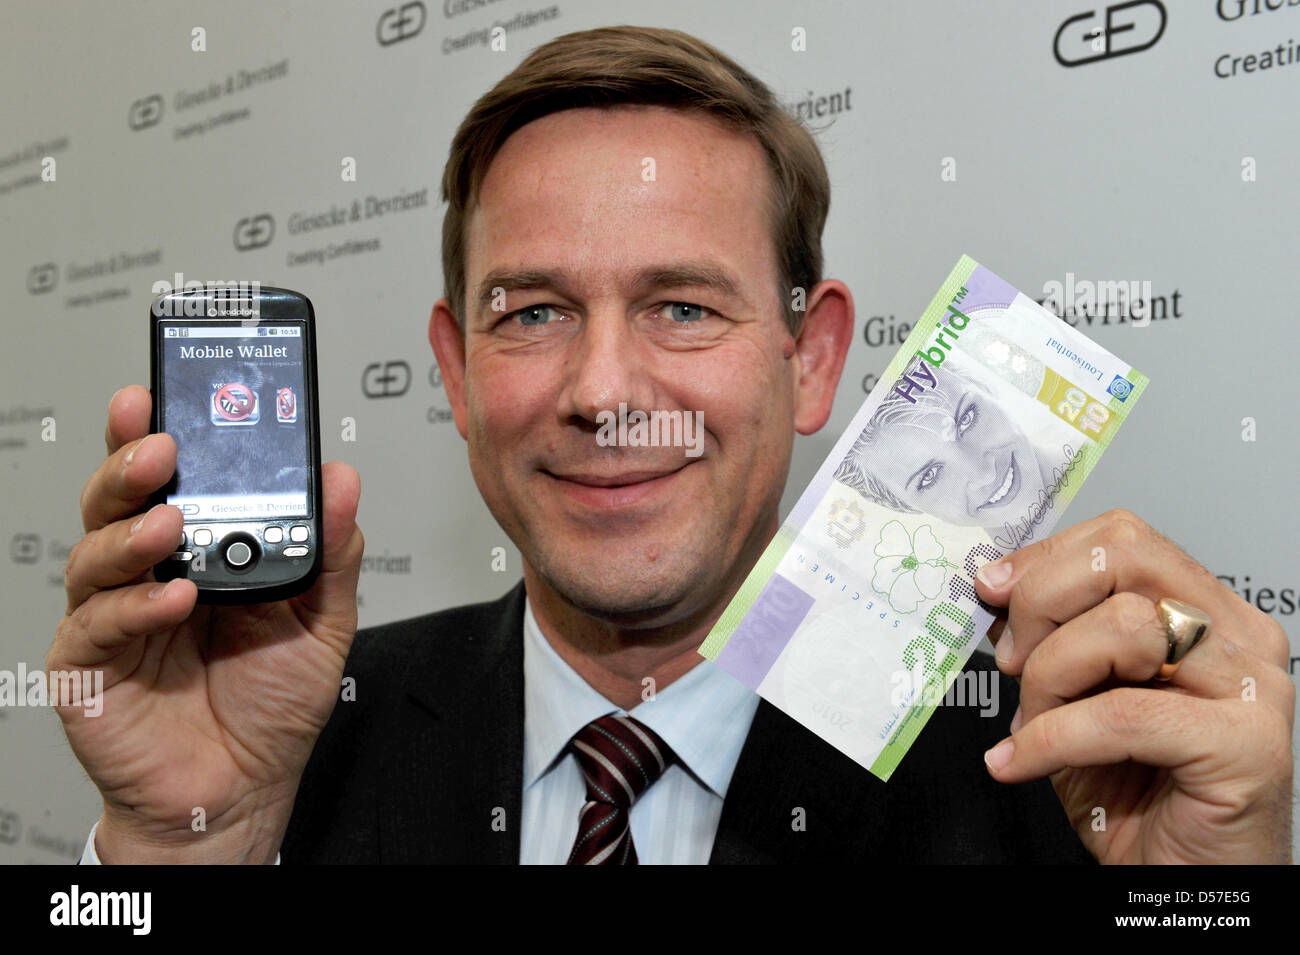 Karsten Ottenberg, CEO of bank note specialist Giesecke & Devrient, holds a mobile phone for cashless paying and Stock Photo